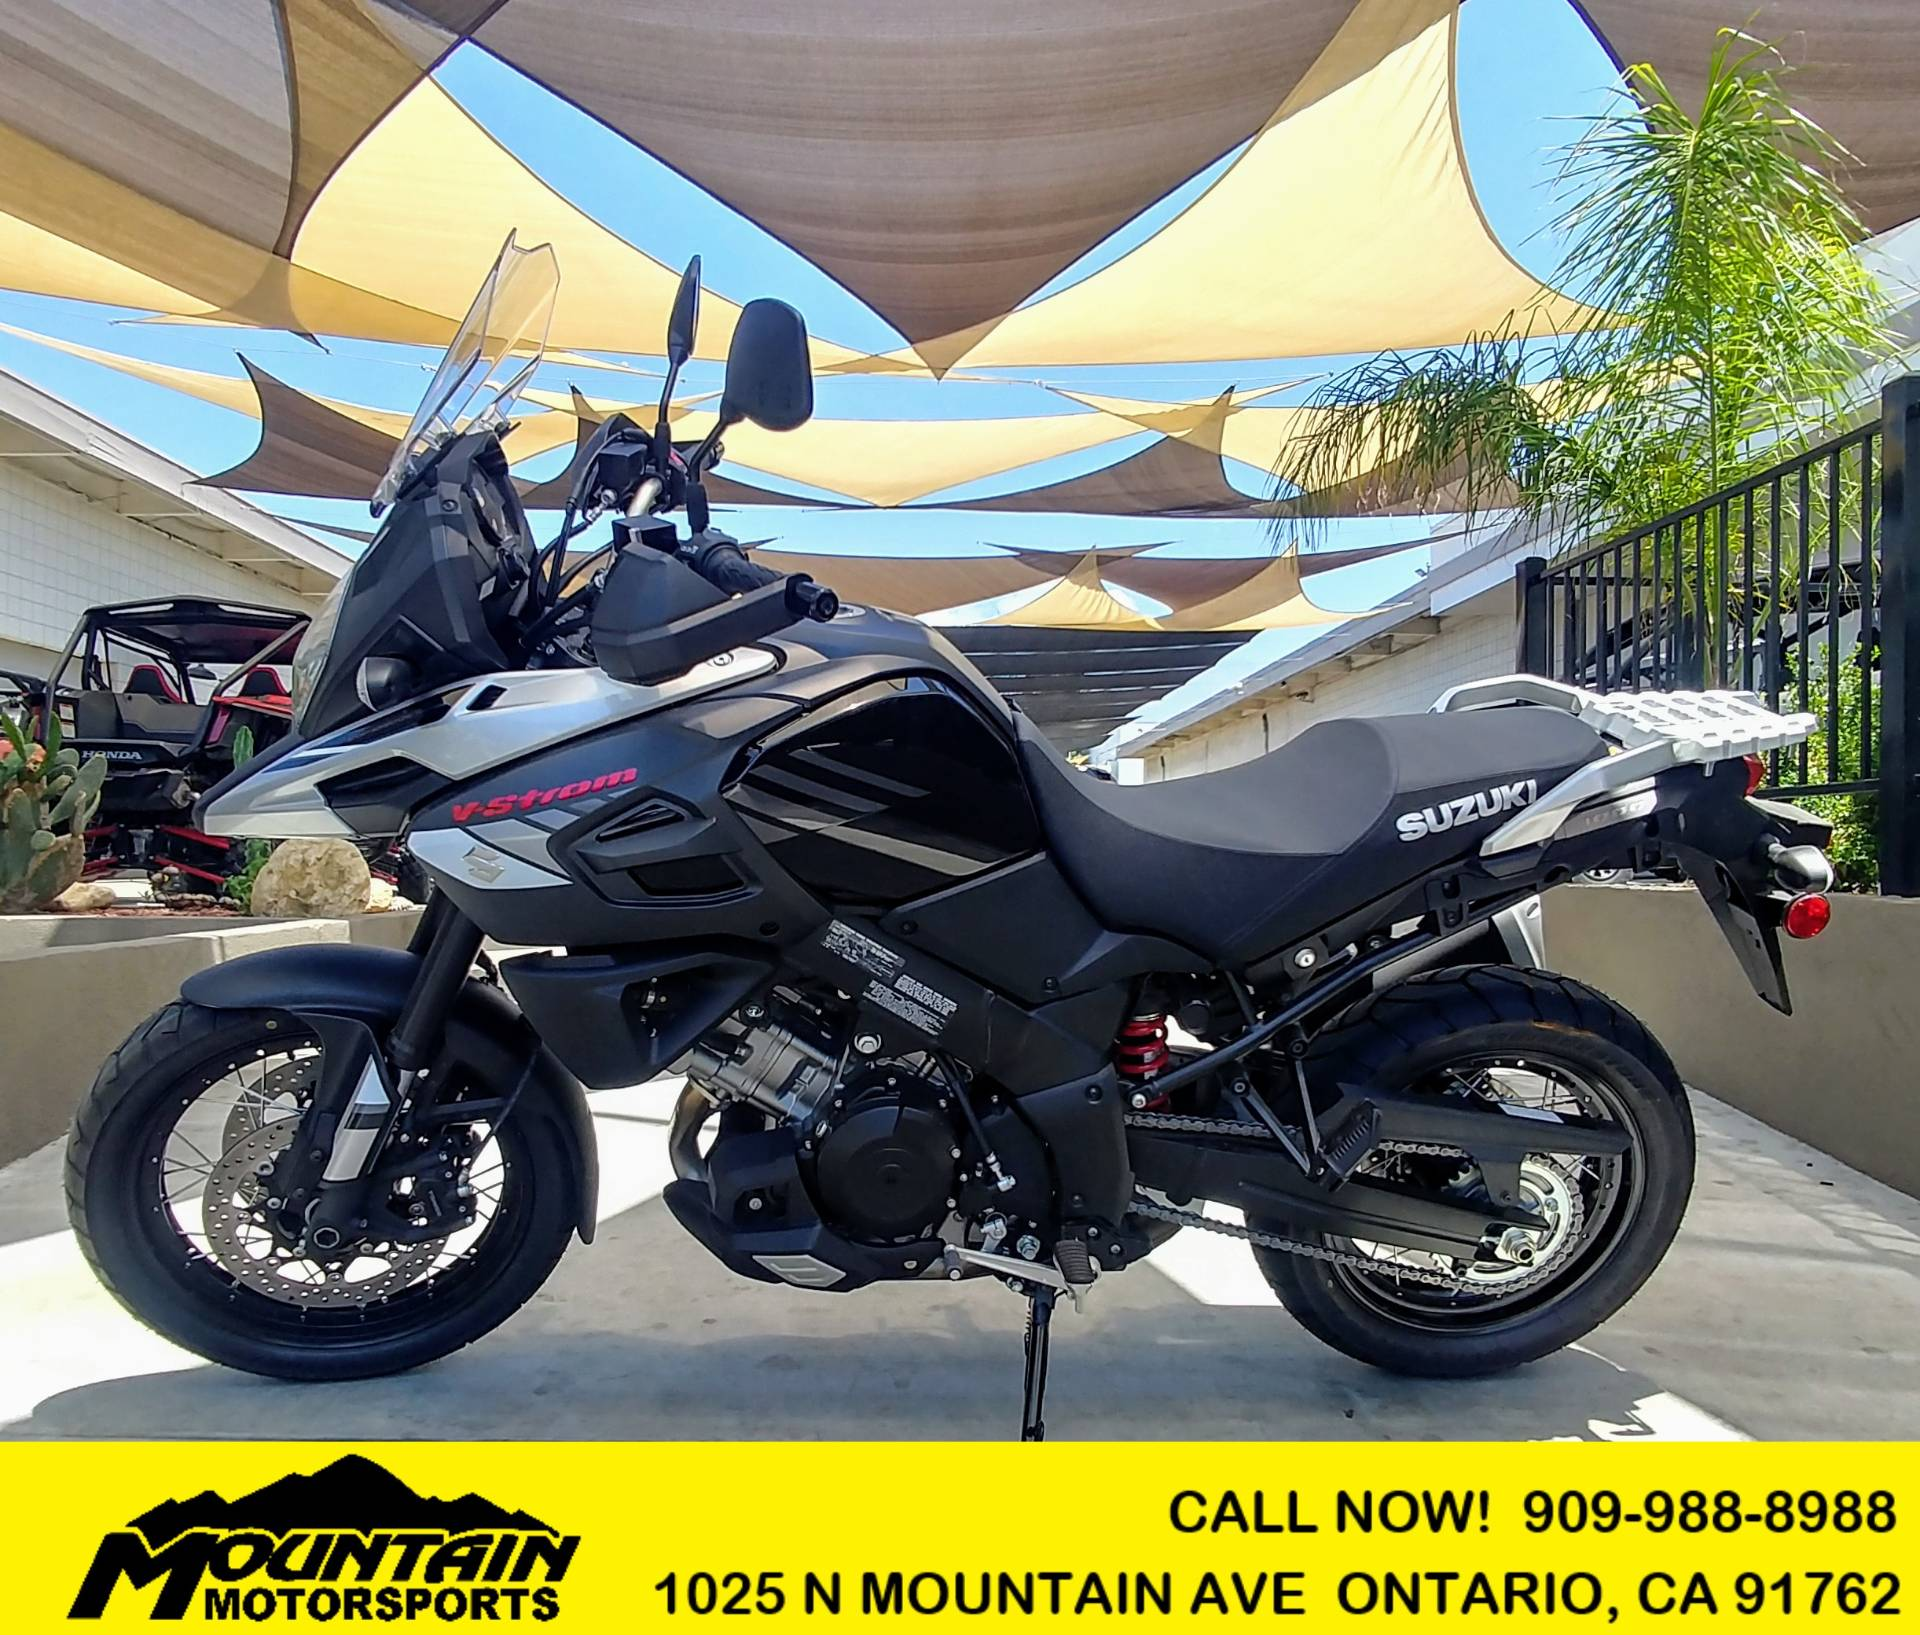 2018 Suzuki V-Strom 1000XT for sale 2206